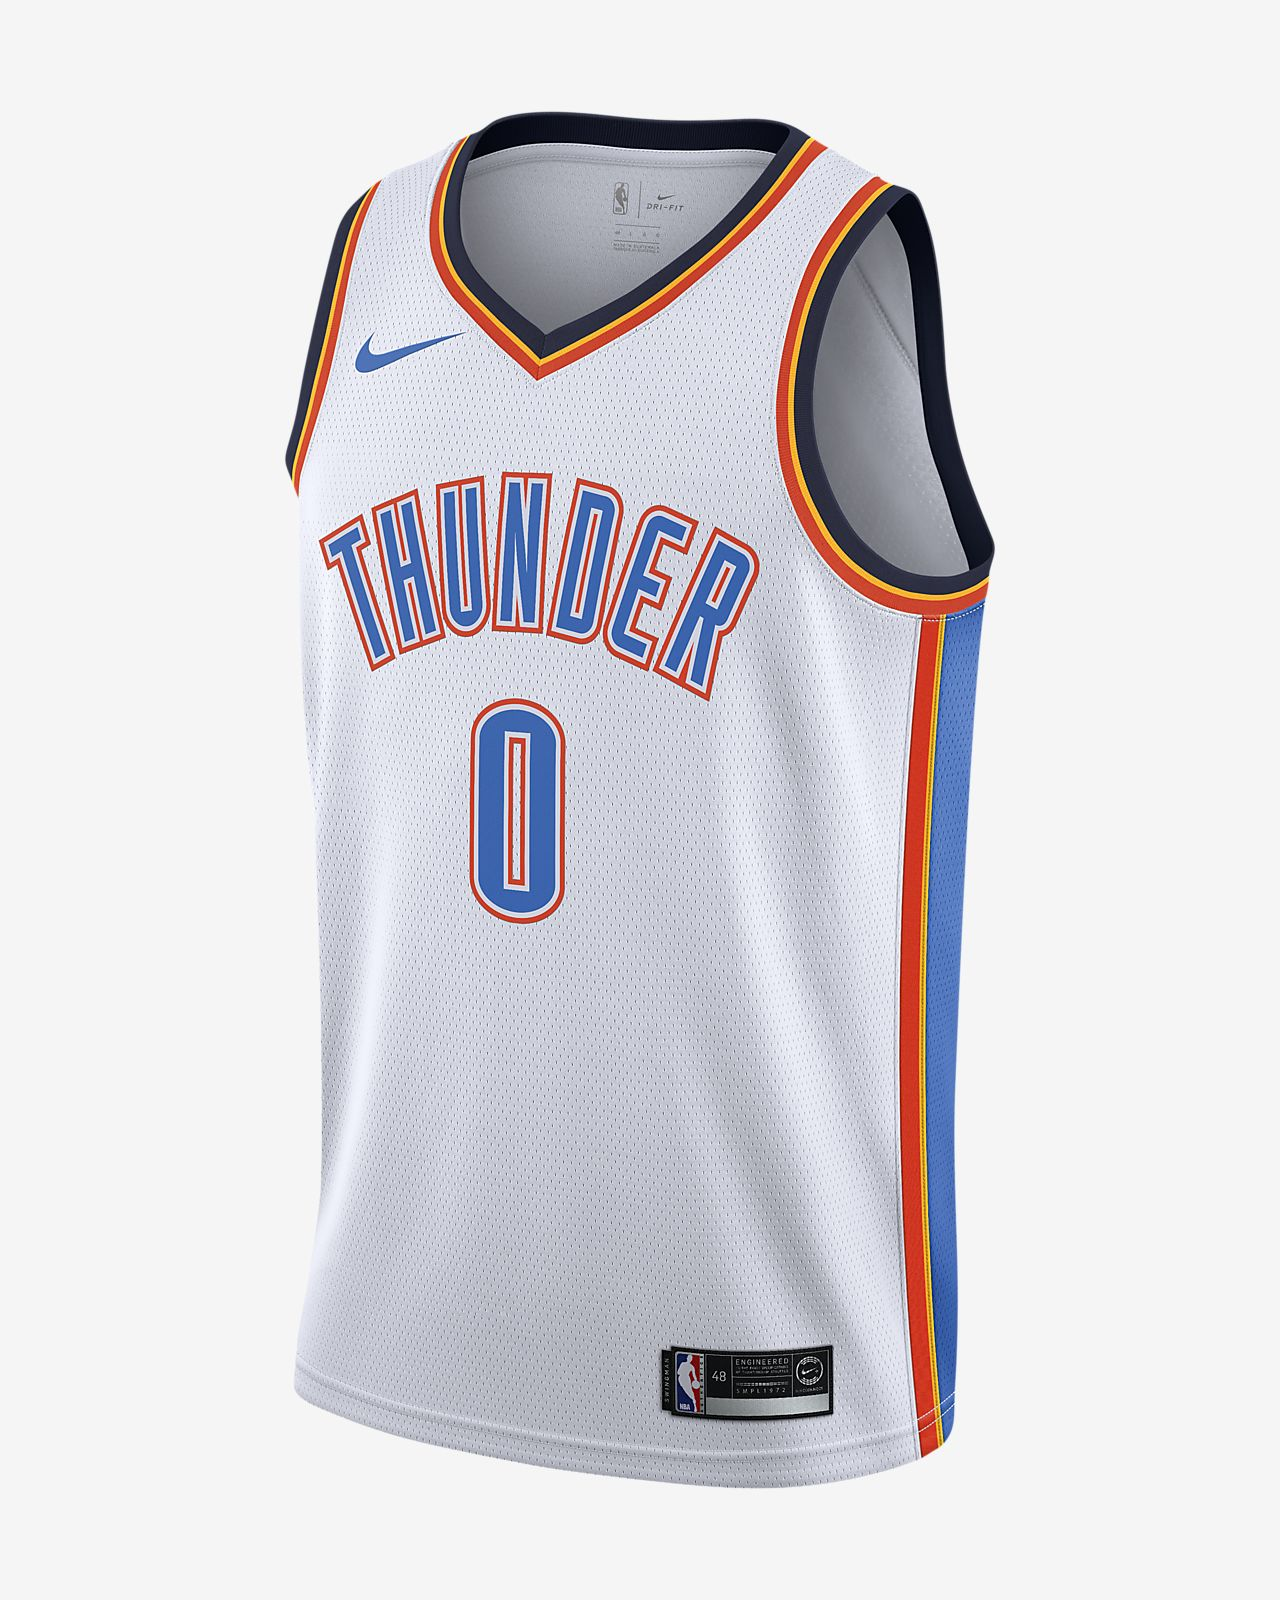 615a90b1845 Men s Nike NBA Connected Jersey. Russell Westbrook Association Edition  Swingman (Oklahoma City Thunder)